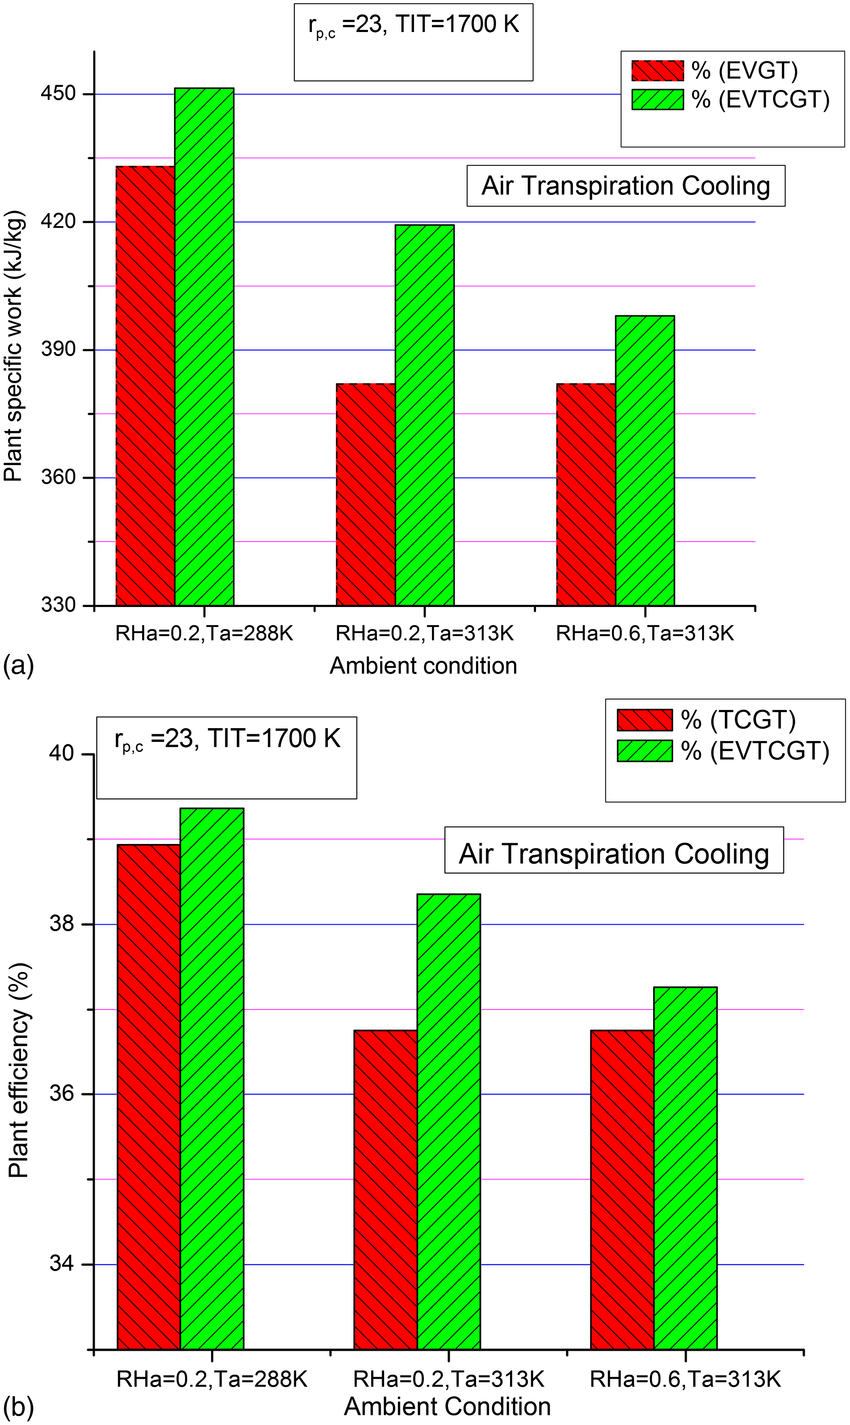 medium resolution of  a effect of ambient temperature on temperature drop across humidifier plant specific work and plant efficiency for evtcgt cycle b effect of ambient